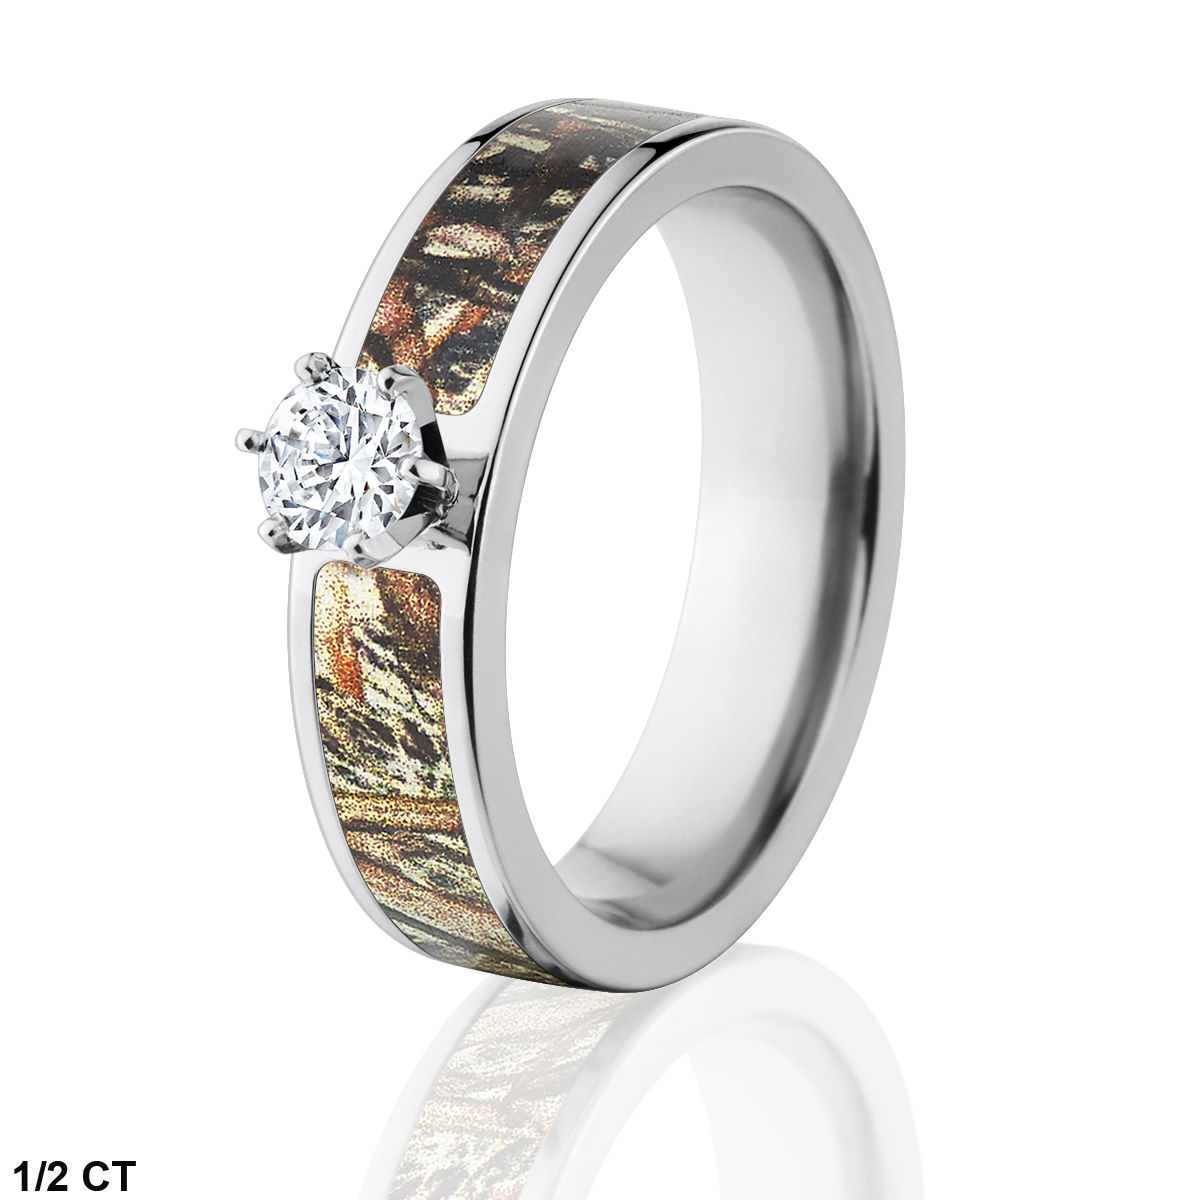 Mossy Oak Camo Engagement Ring w/ Genuine Diamond - Duck Blind Camo